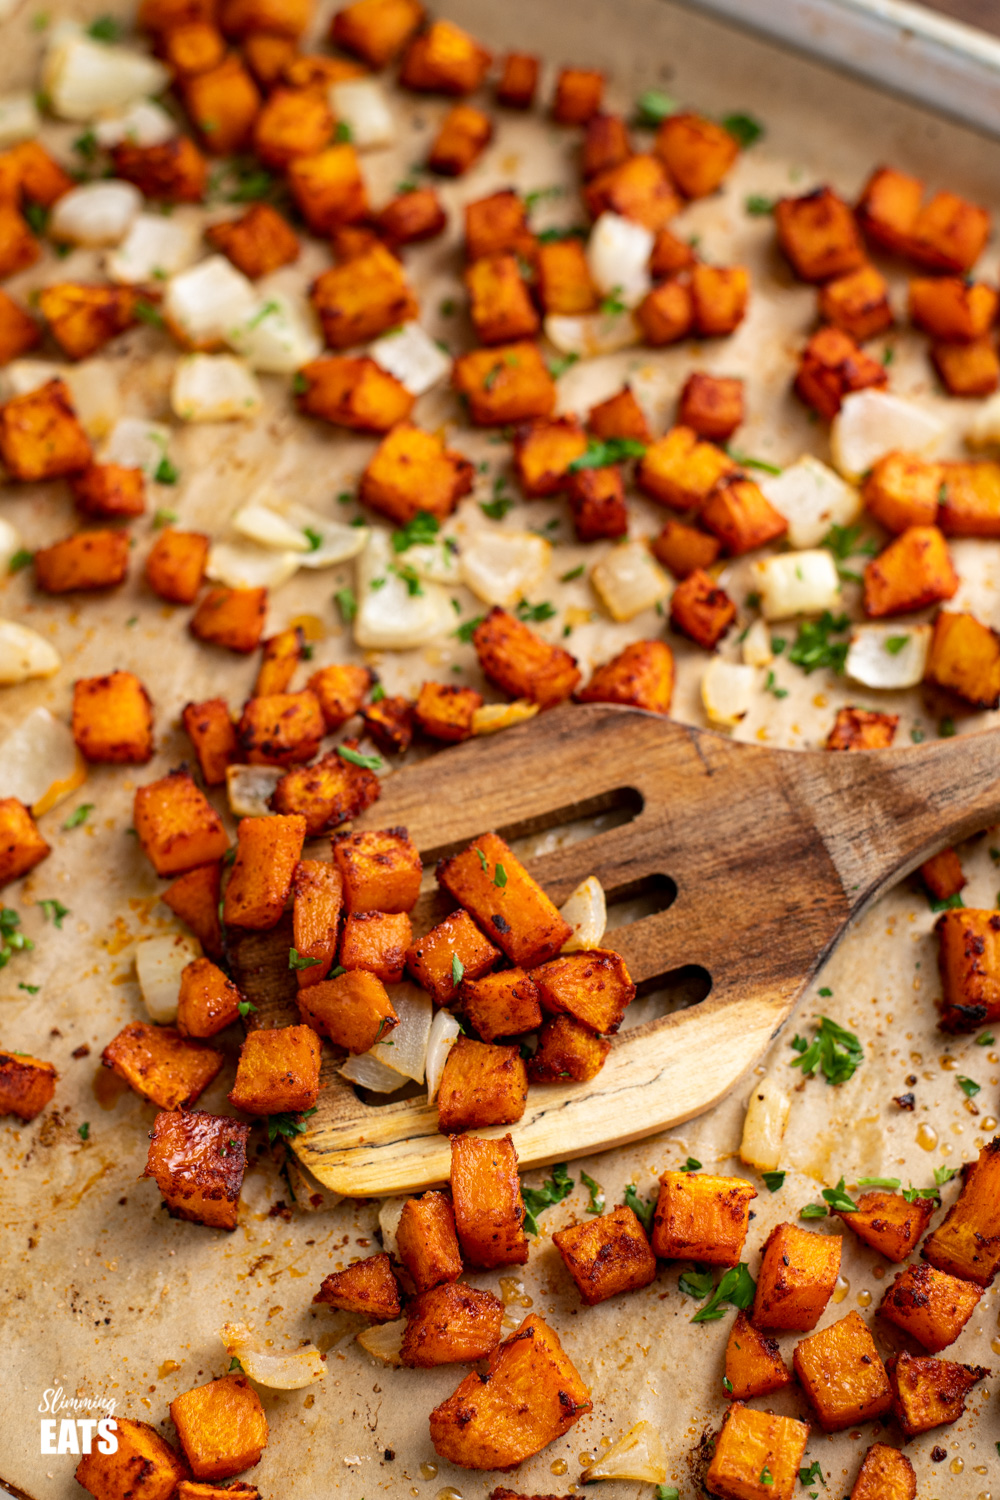 wooden spatula scooping up roasted butternut squash from parchment lined baking tray